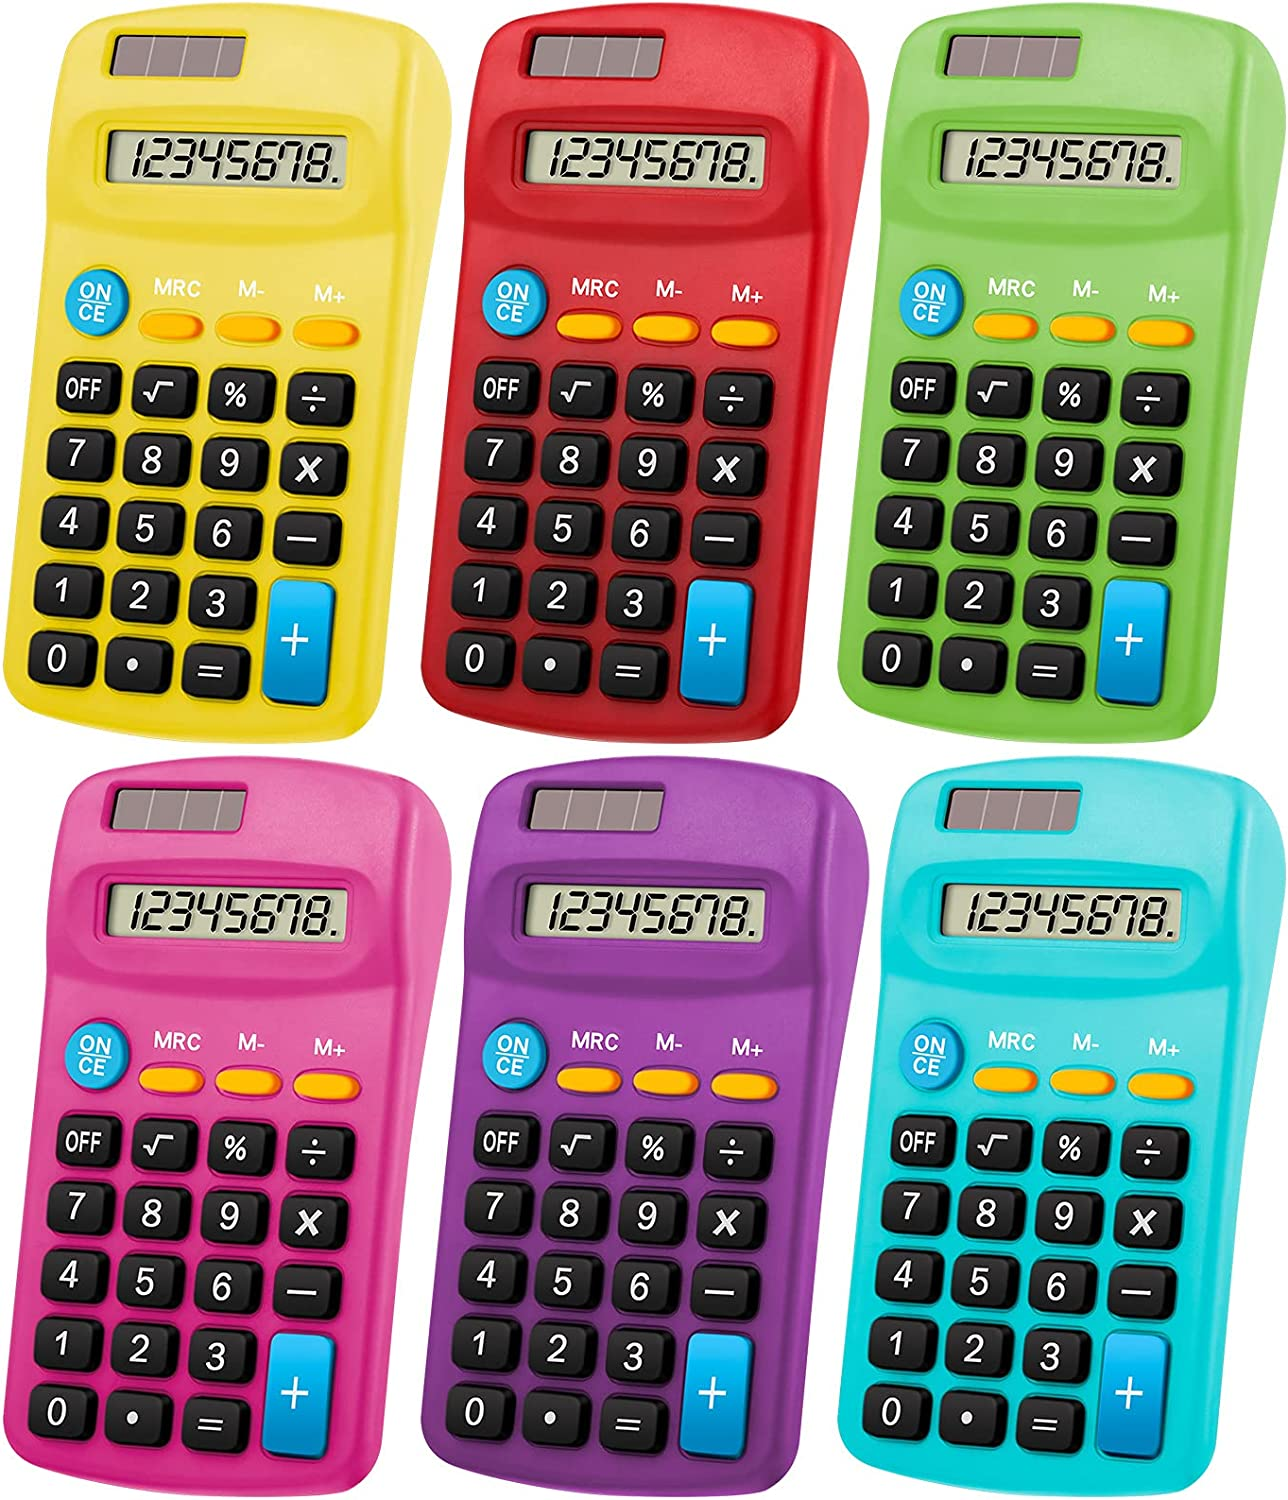 Pocket Size Calculator 8 Digit Display Solar Basic Calculator Dual Powered Mini Calculator for Desktop Home Office School Students Kids, 6 Colors (6 Pieces)